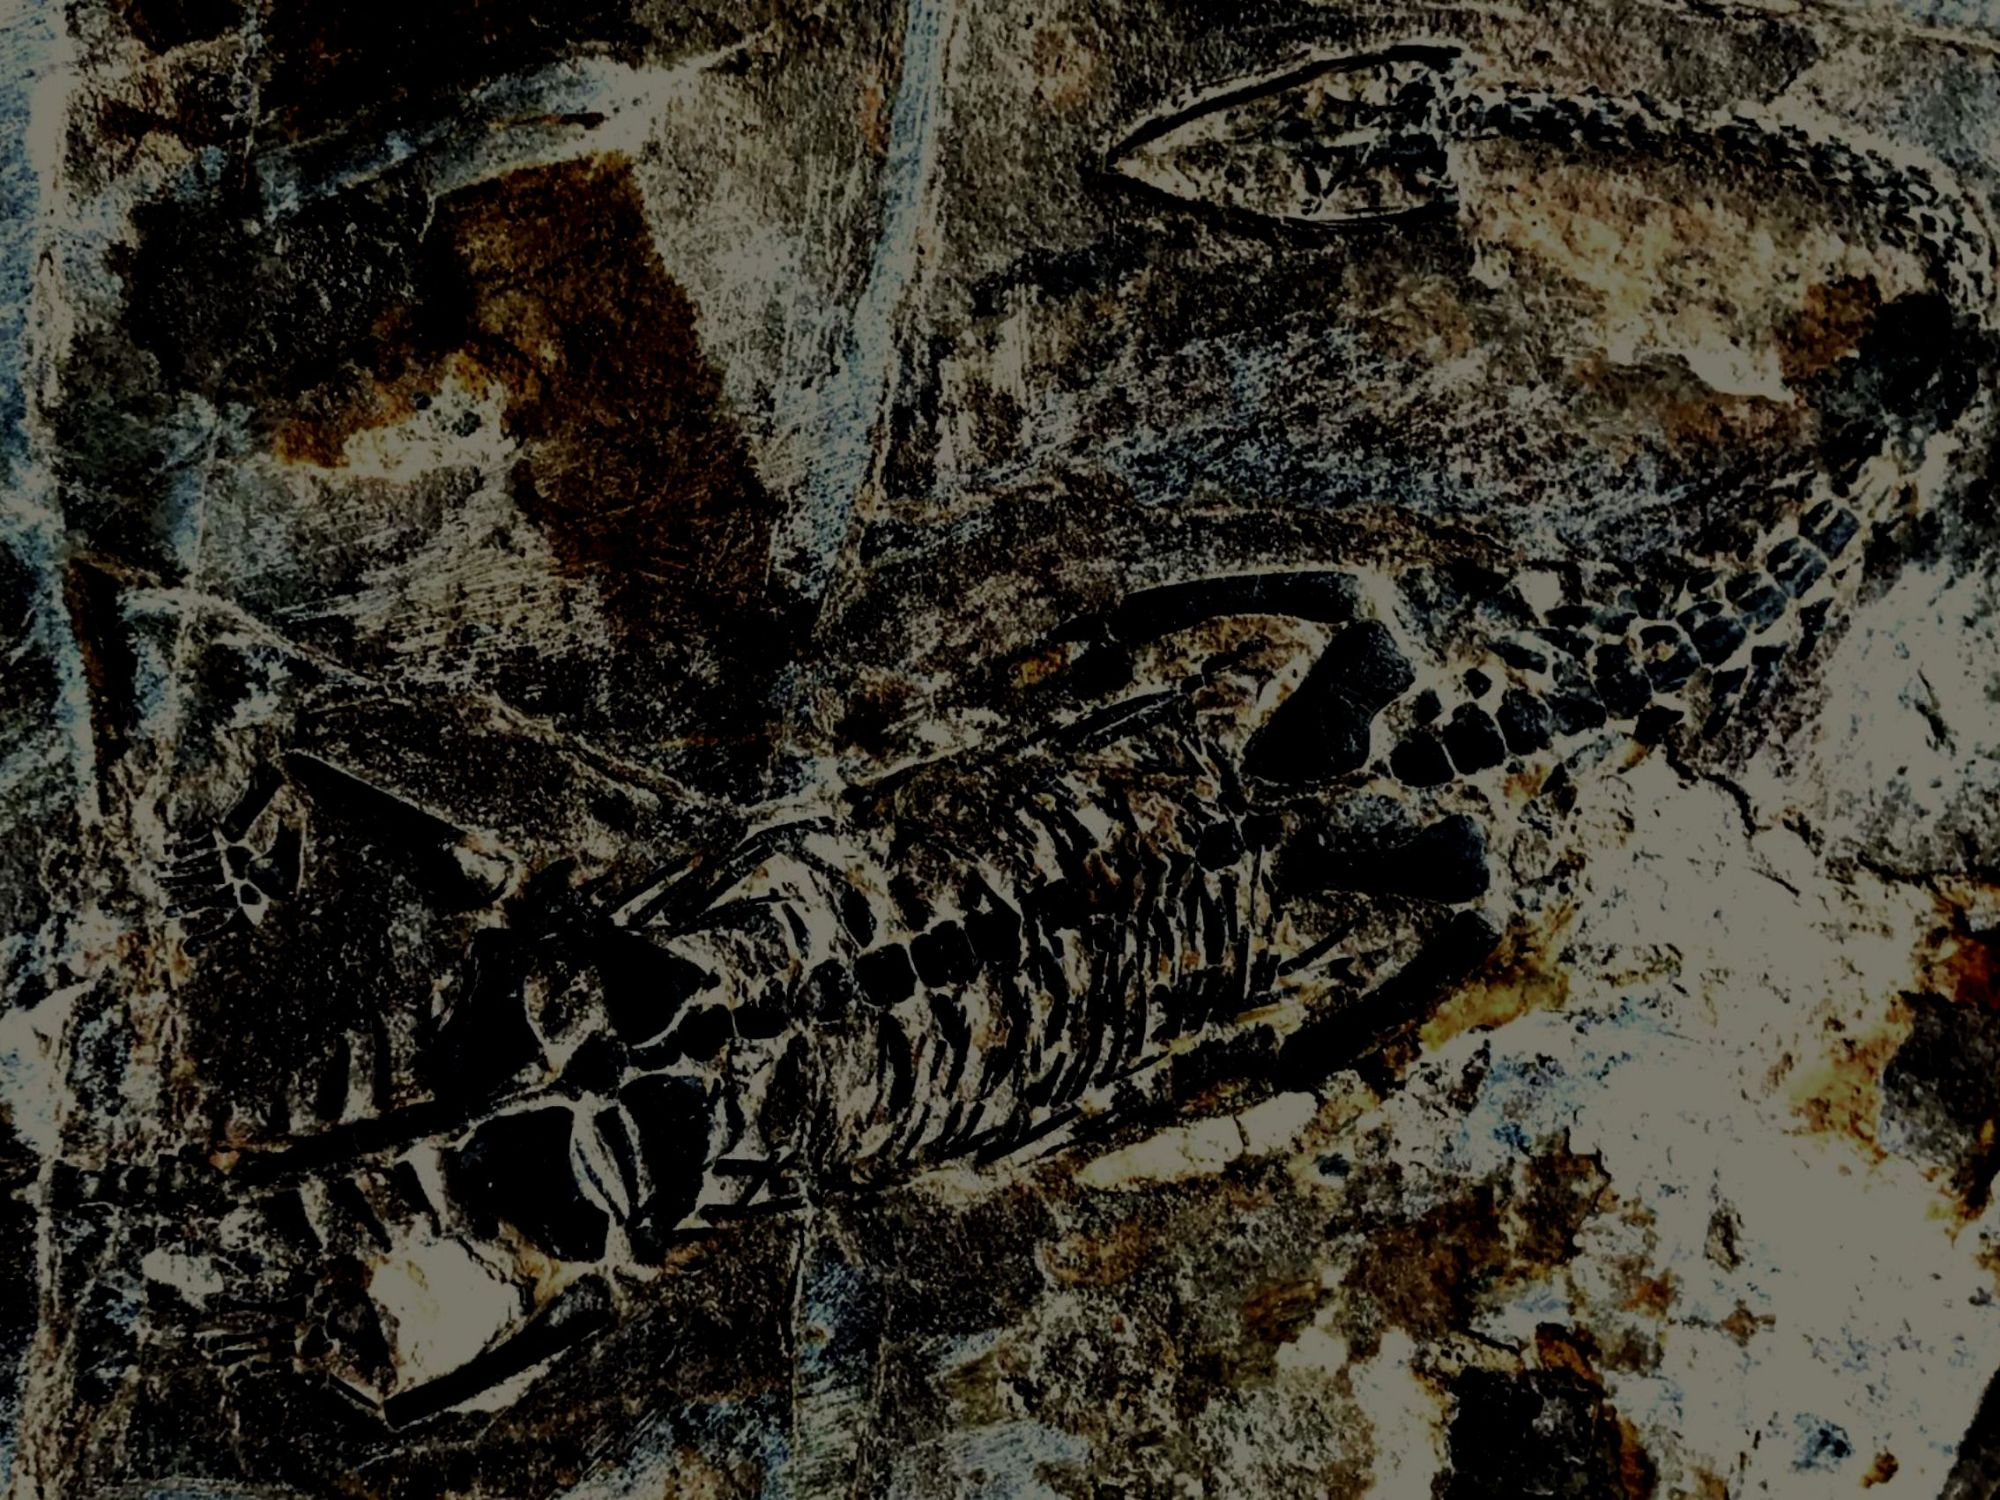 See all reptile and pterosaur fossils we have for sale.